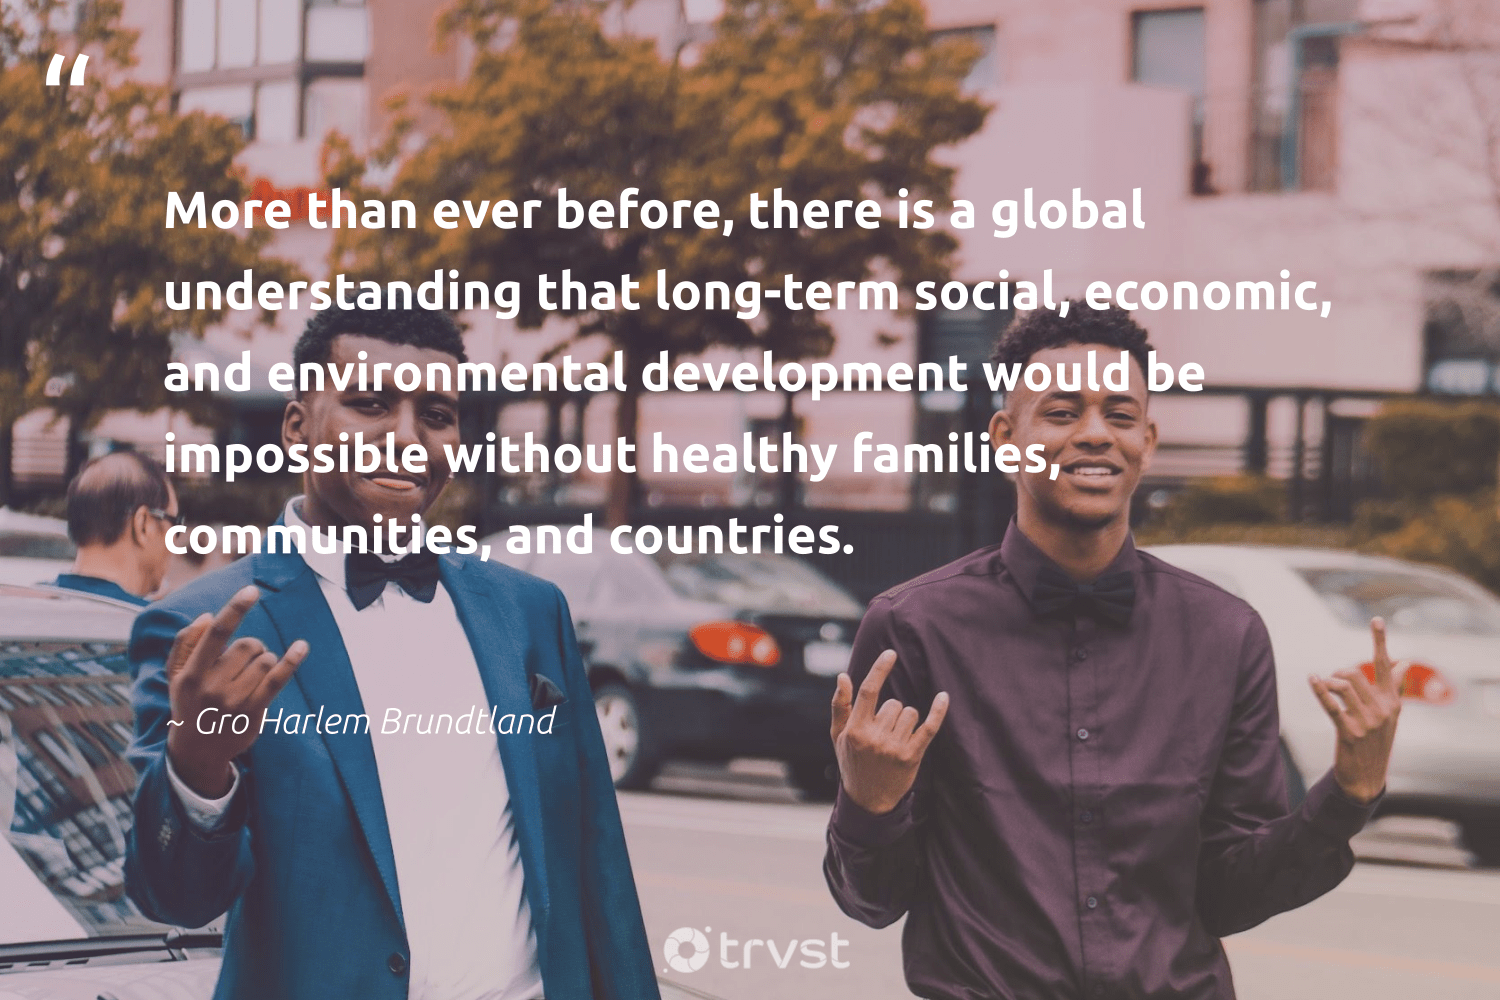 """More than ever before, there is a global understanding that long-term social, economic, and environmental development would be impossible without healthy families, communities, and countries.""  - Gro Harlem Brundtland #trvst #quotes #environmental #communities #families #healthy #development #healthylife #socialgood #togetherwecan #collectiveaction #healthyliving"